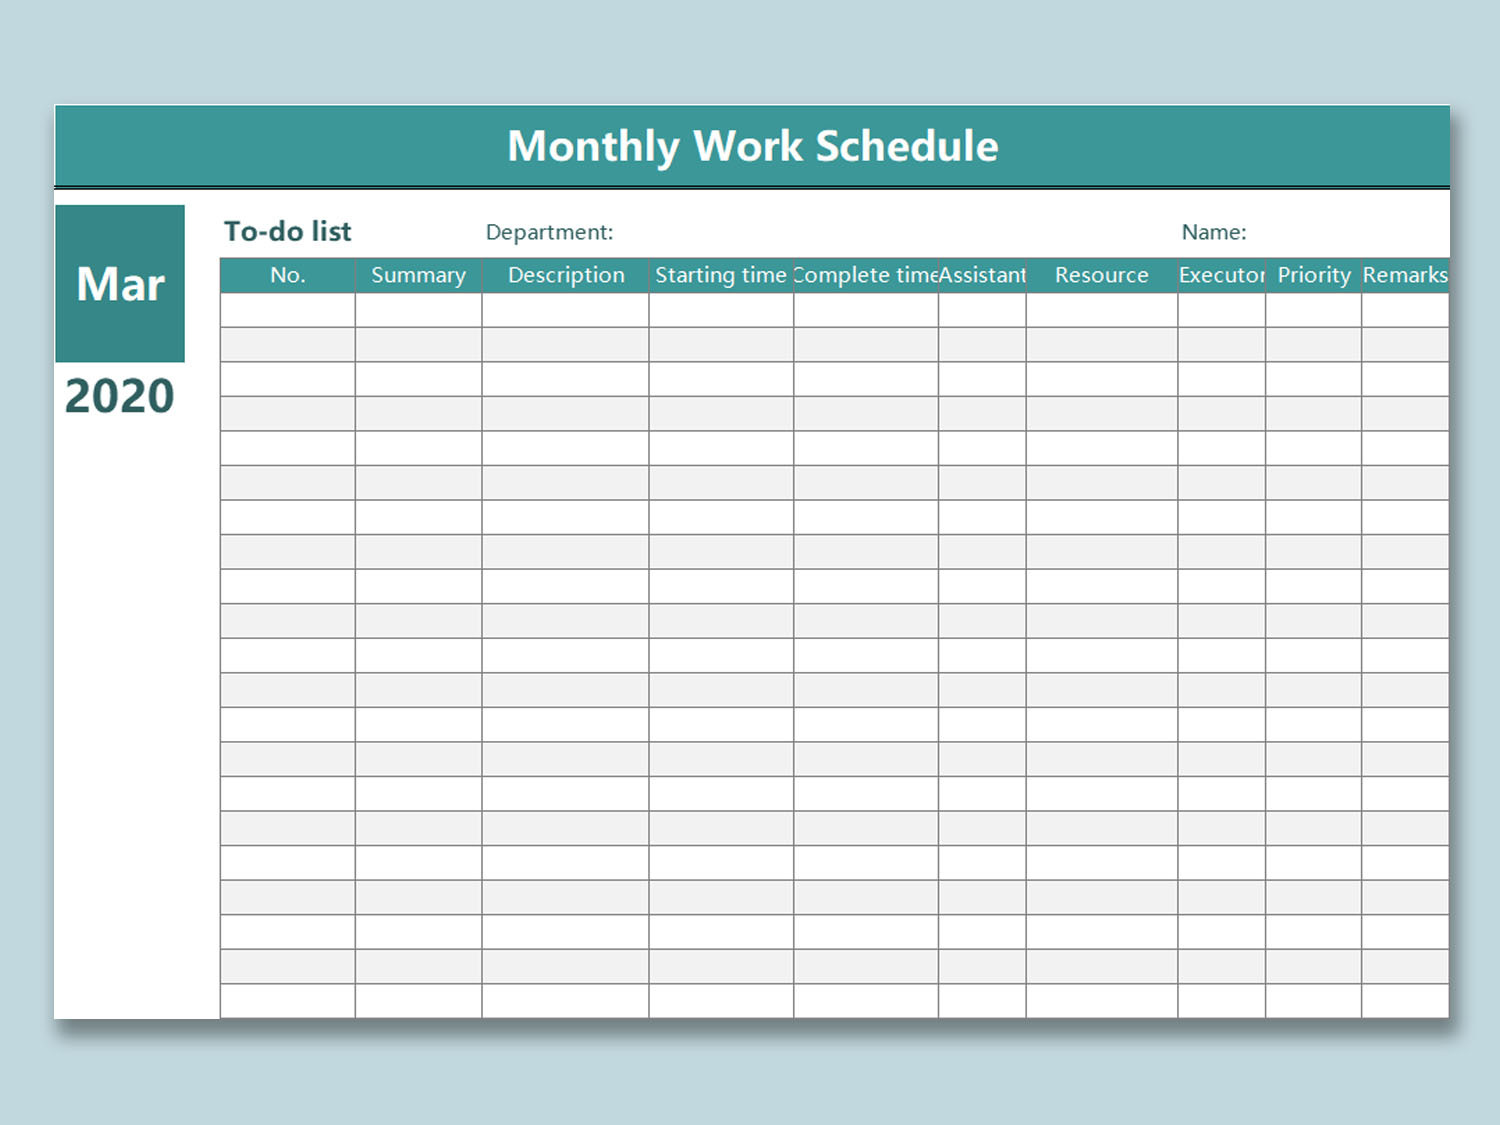 Employee Schedule Template Free from d4z1onkegyrs5.cloudfront.net